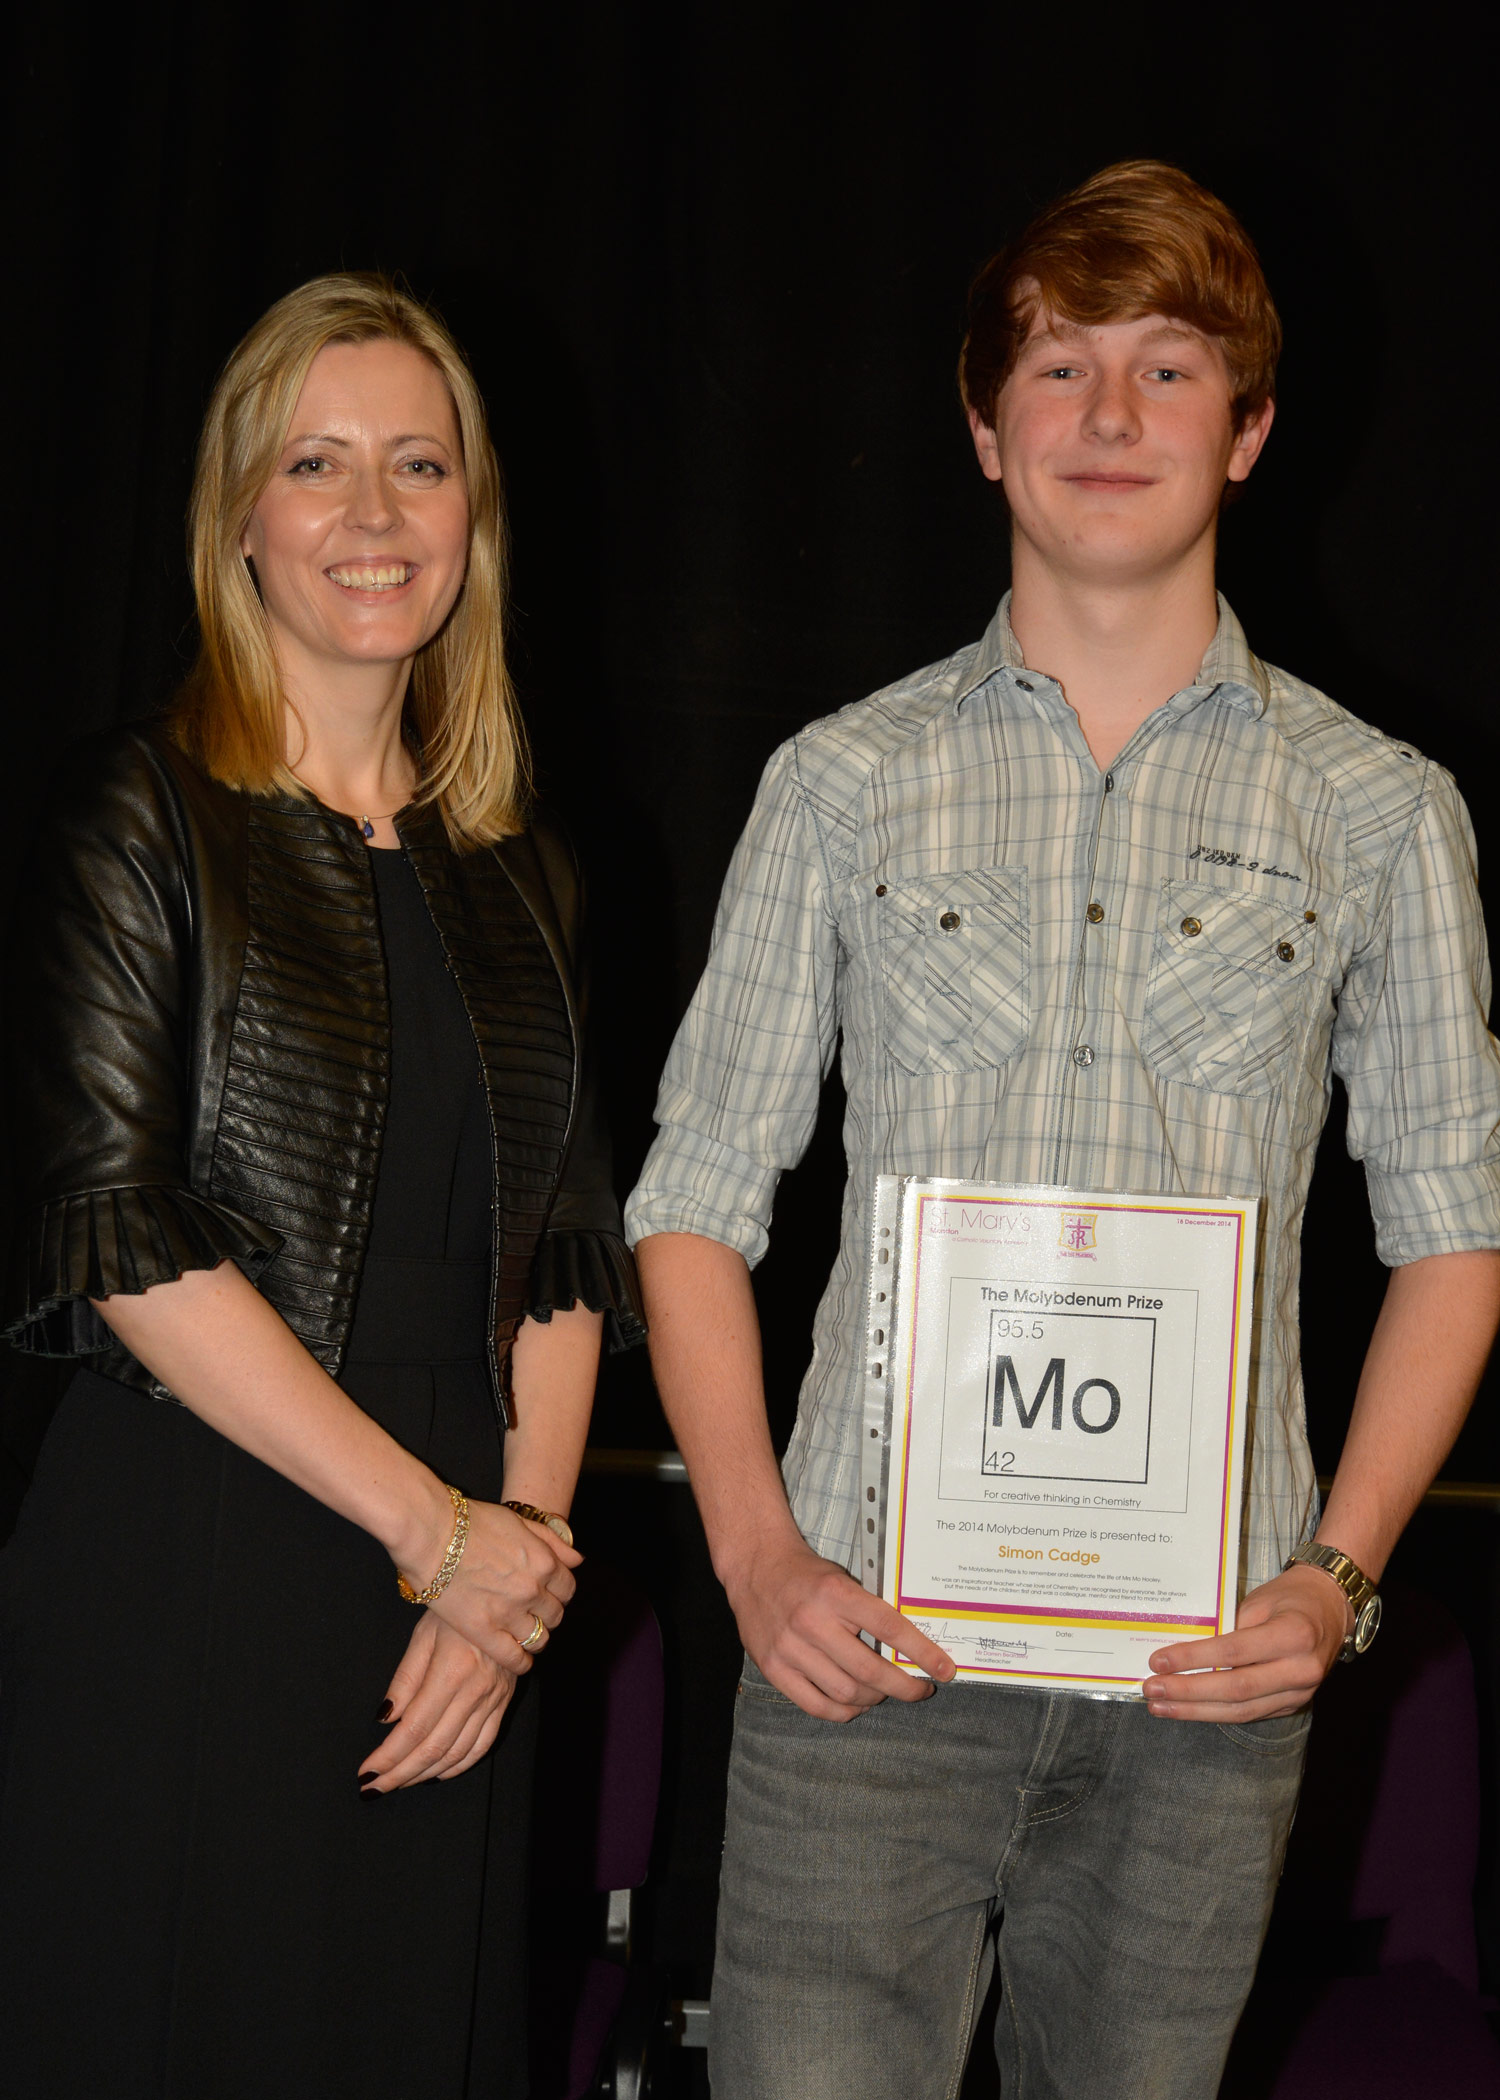 Photo: Former St. Mary's Menston pupil Joanne Milner, CEO of Debretts with Simon Cadge, Year 13 Presentation Evening, 18 December 2014